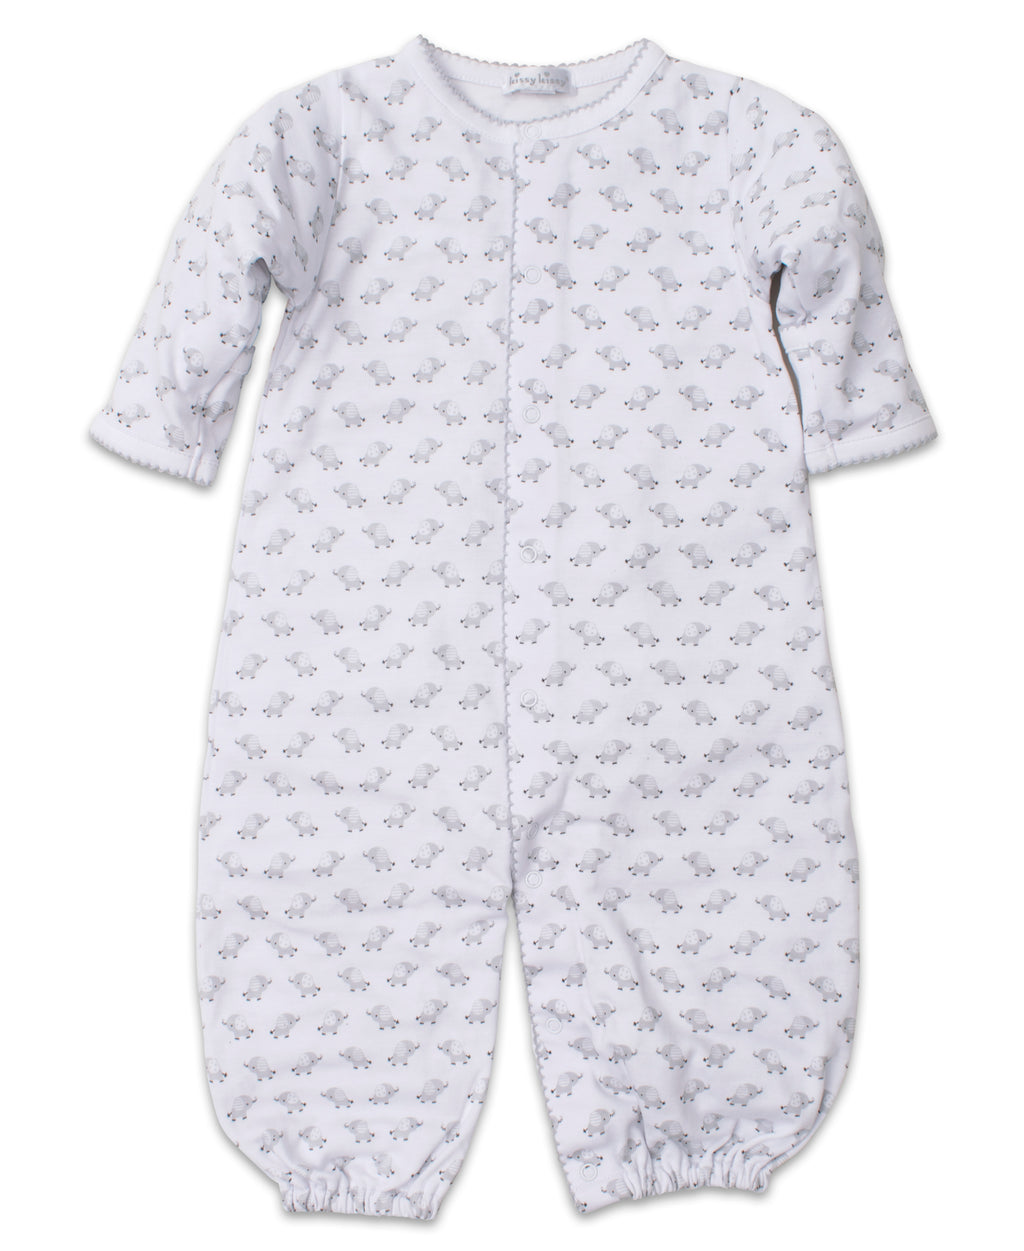 Baby Trunks Silver Print Convertible Gown